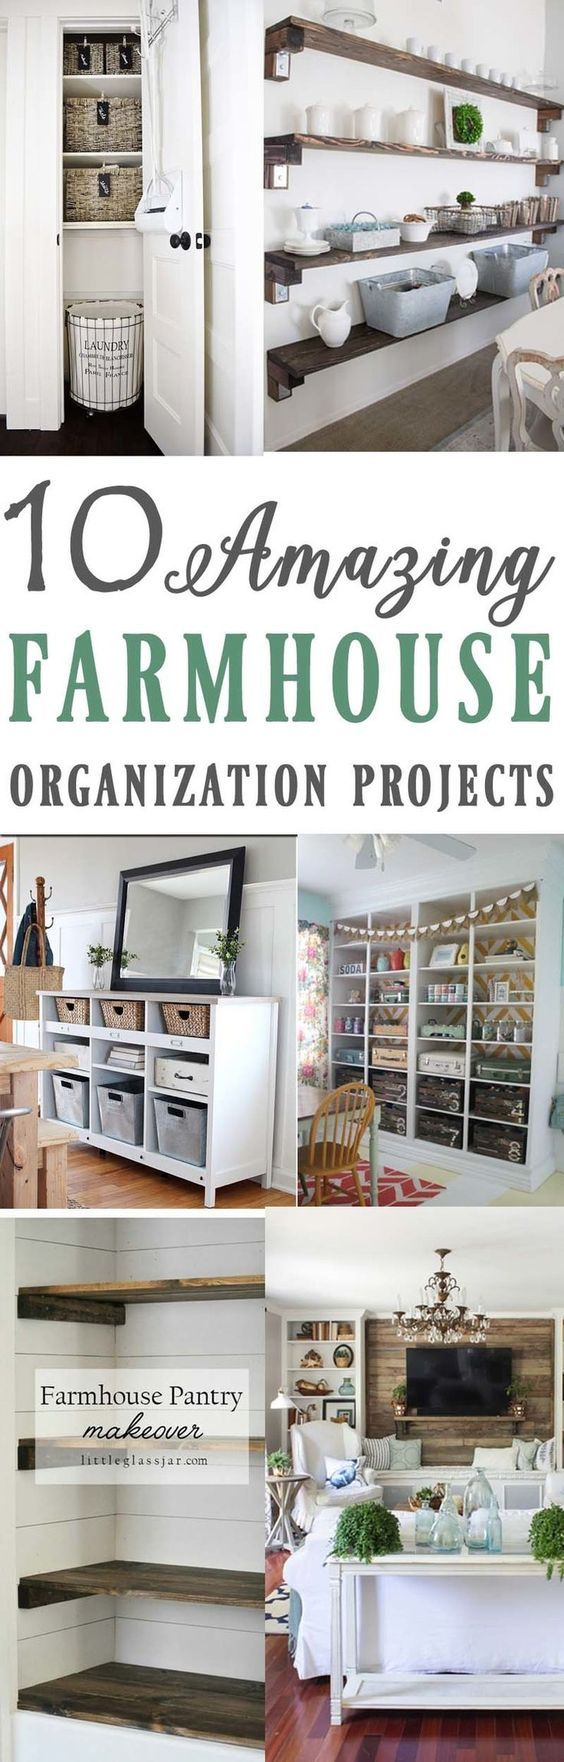 Farmhouse Storage and Organization Ideas — The Mountain View Cottage